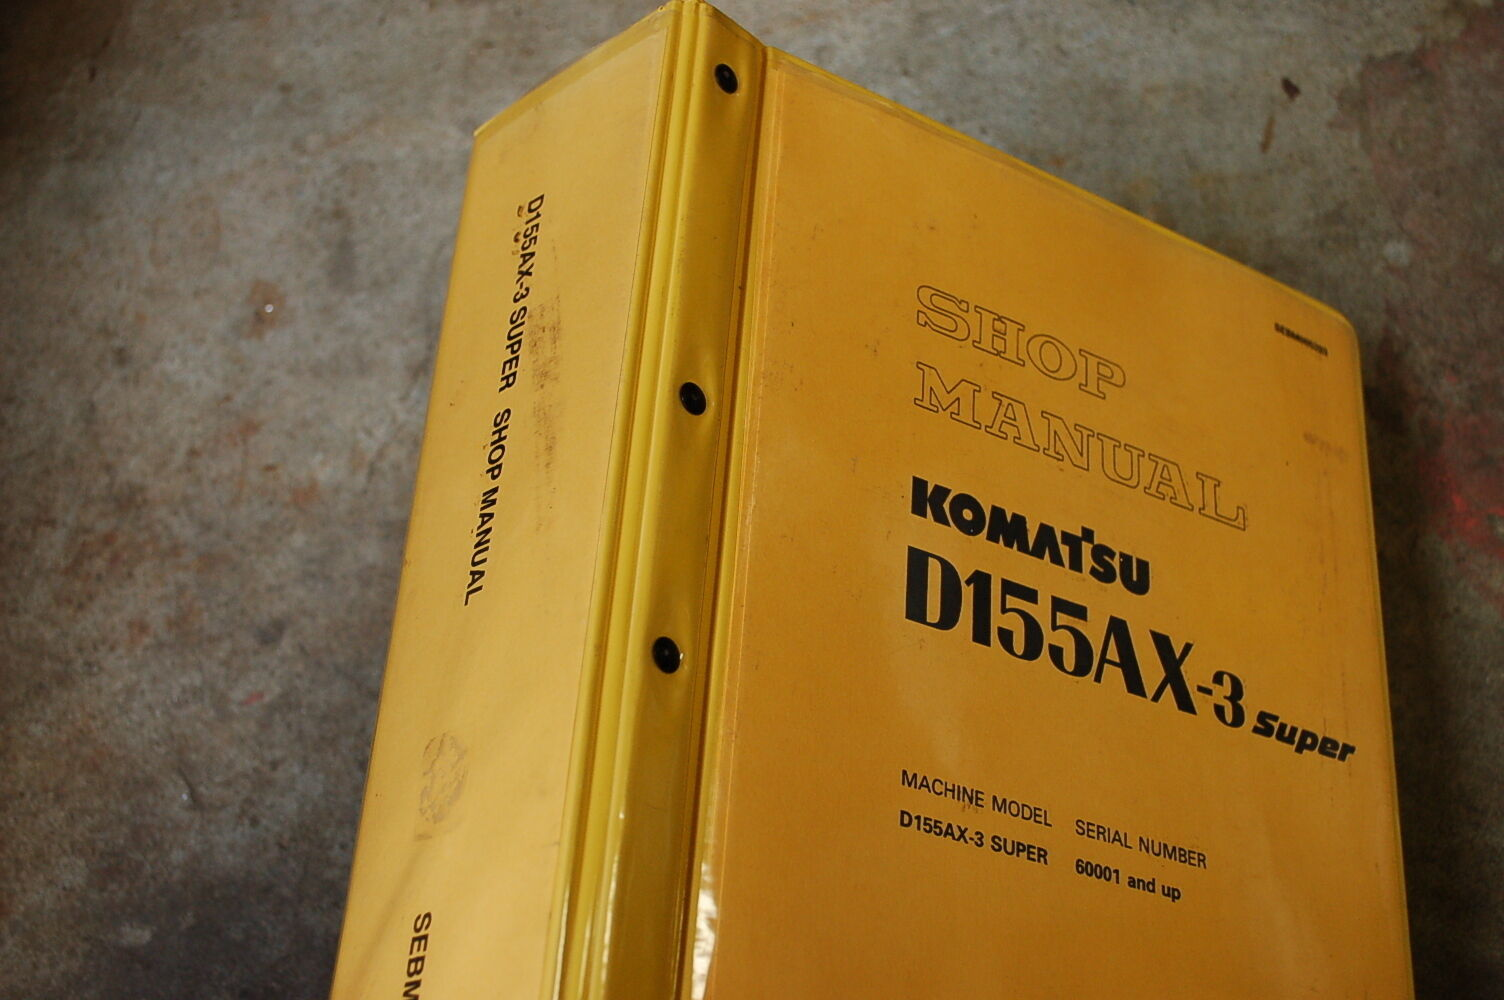 KOMATSU D155AX-3 Tractor Dozer Crawler Service Manual book repair overhaul  shop 1 of 8Only 1 available ...